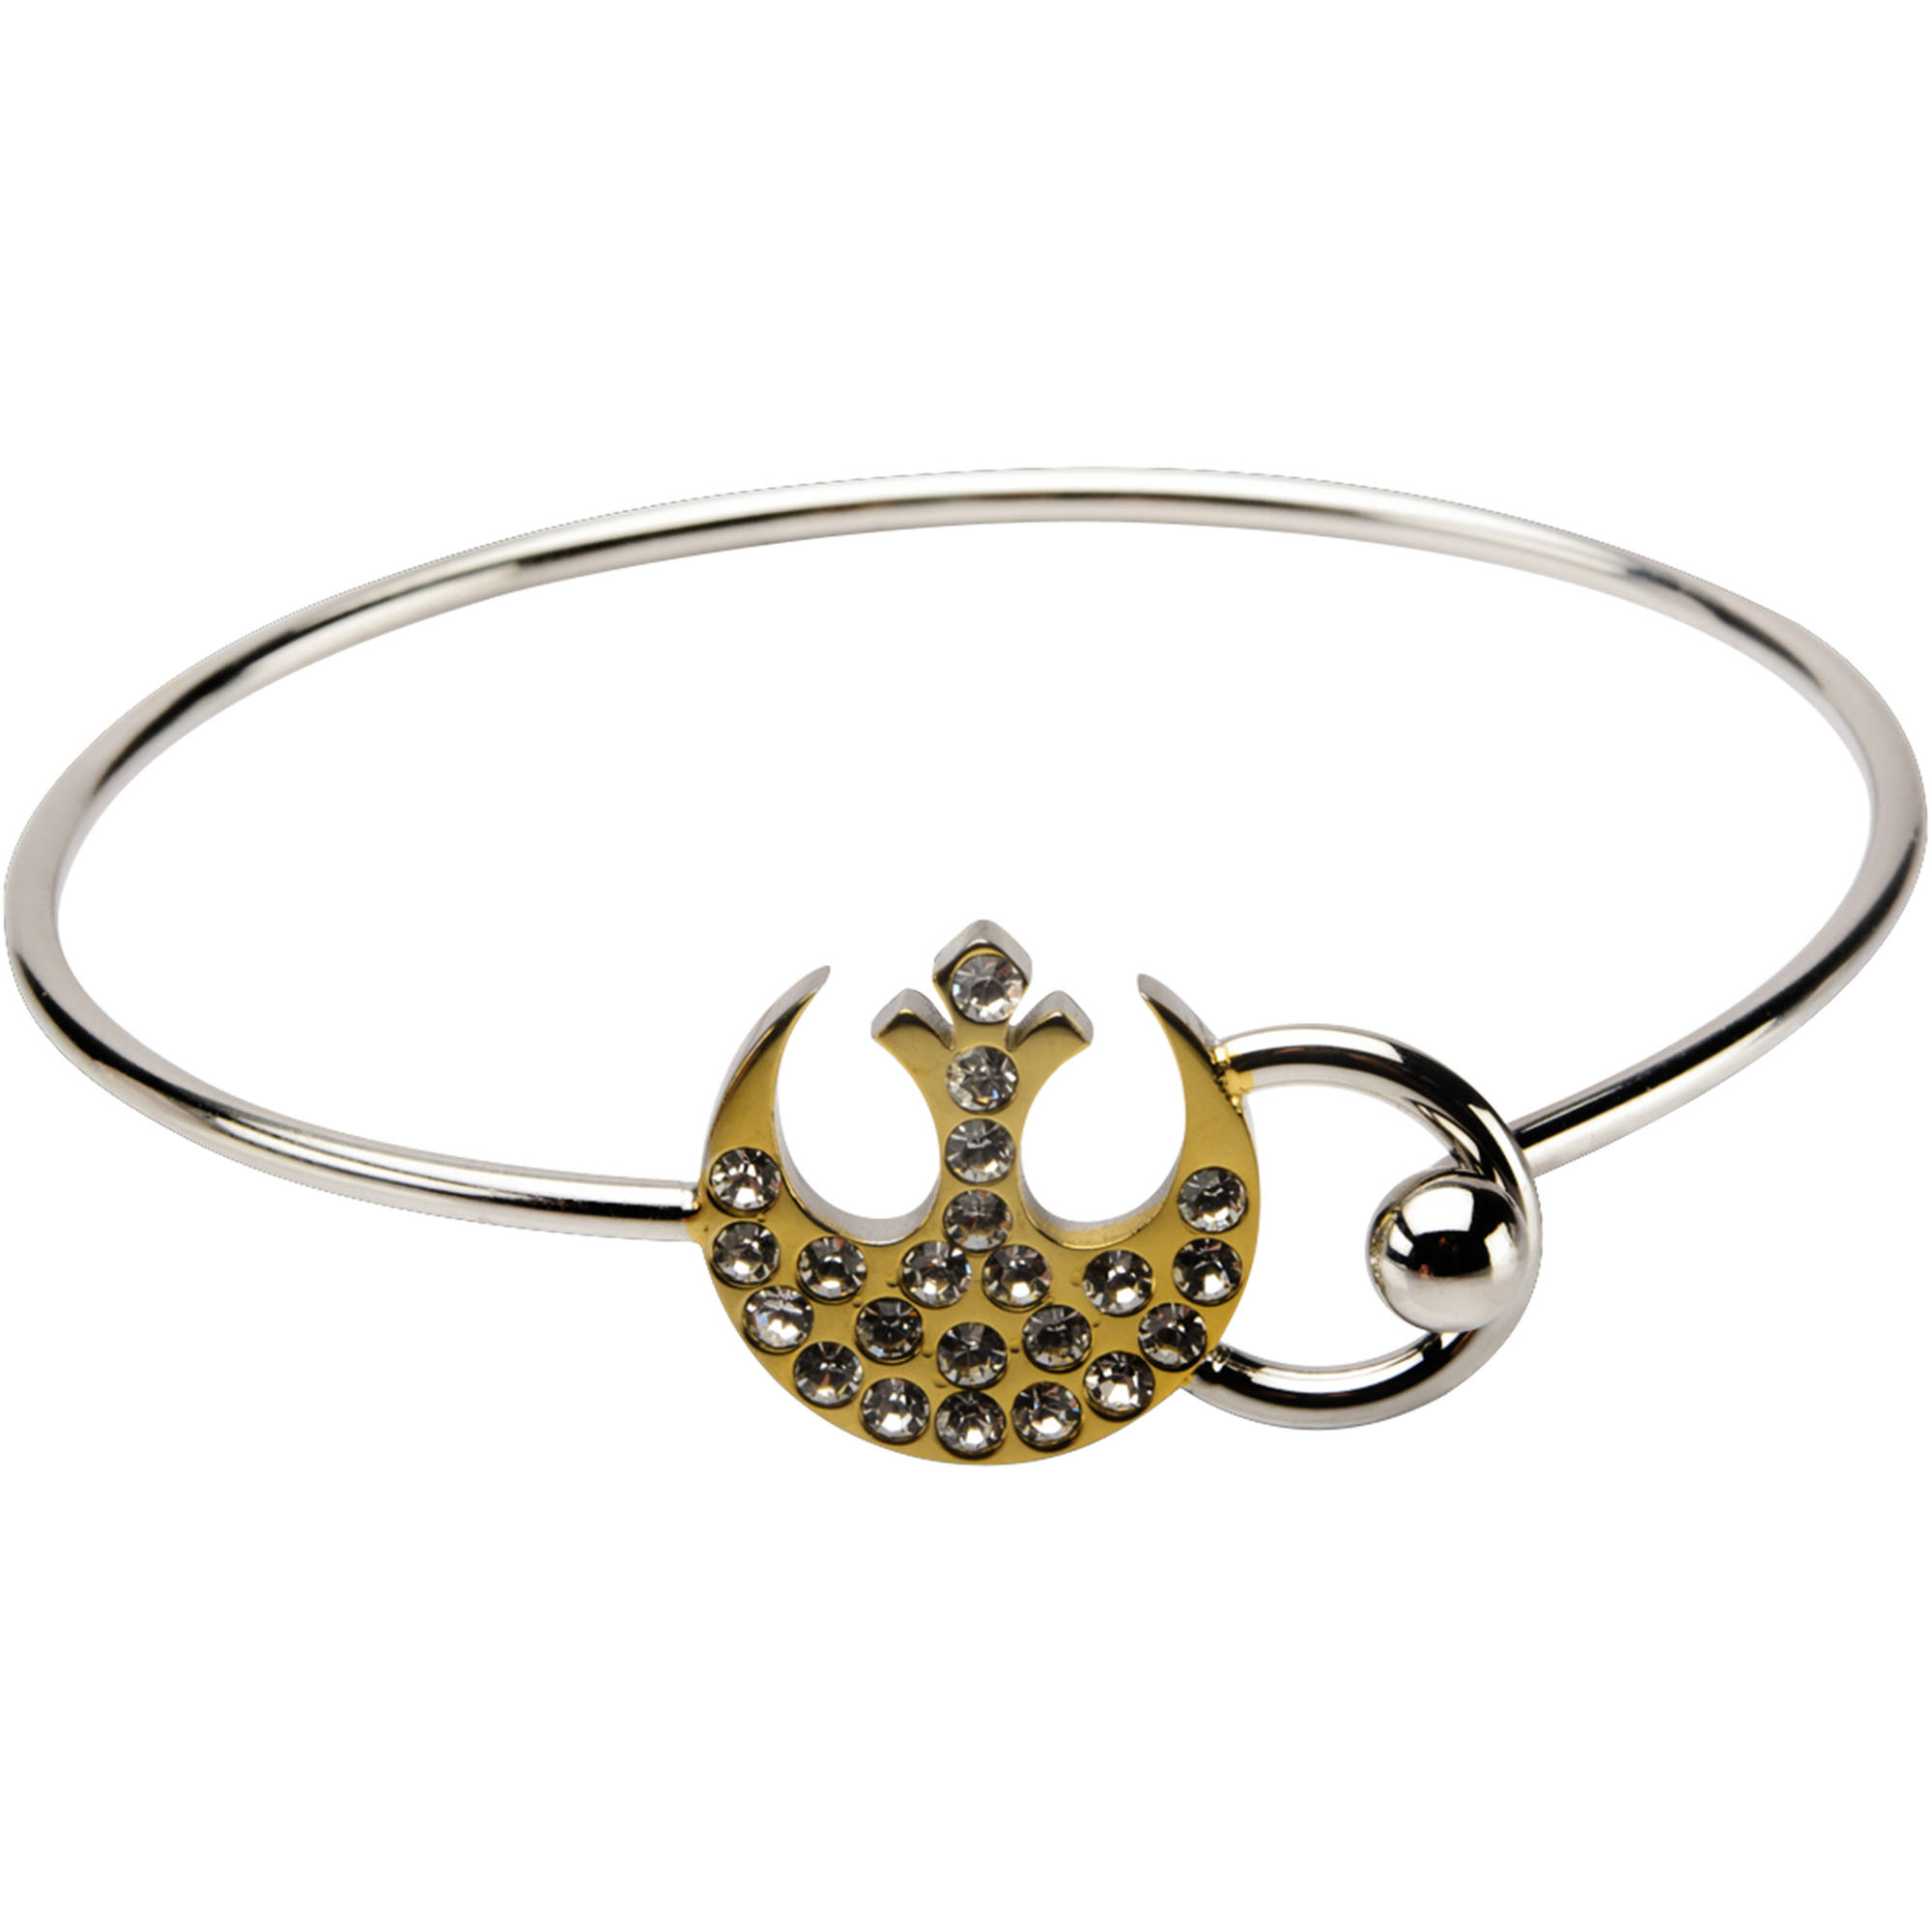 Disney Star Wars Women's Stainless Steel Gold IP Rebel Symbol Bangle Bracelet with Clear Gem, 7.5